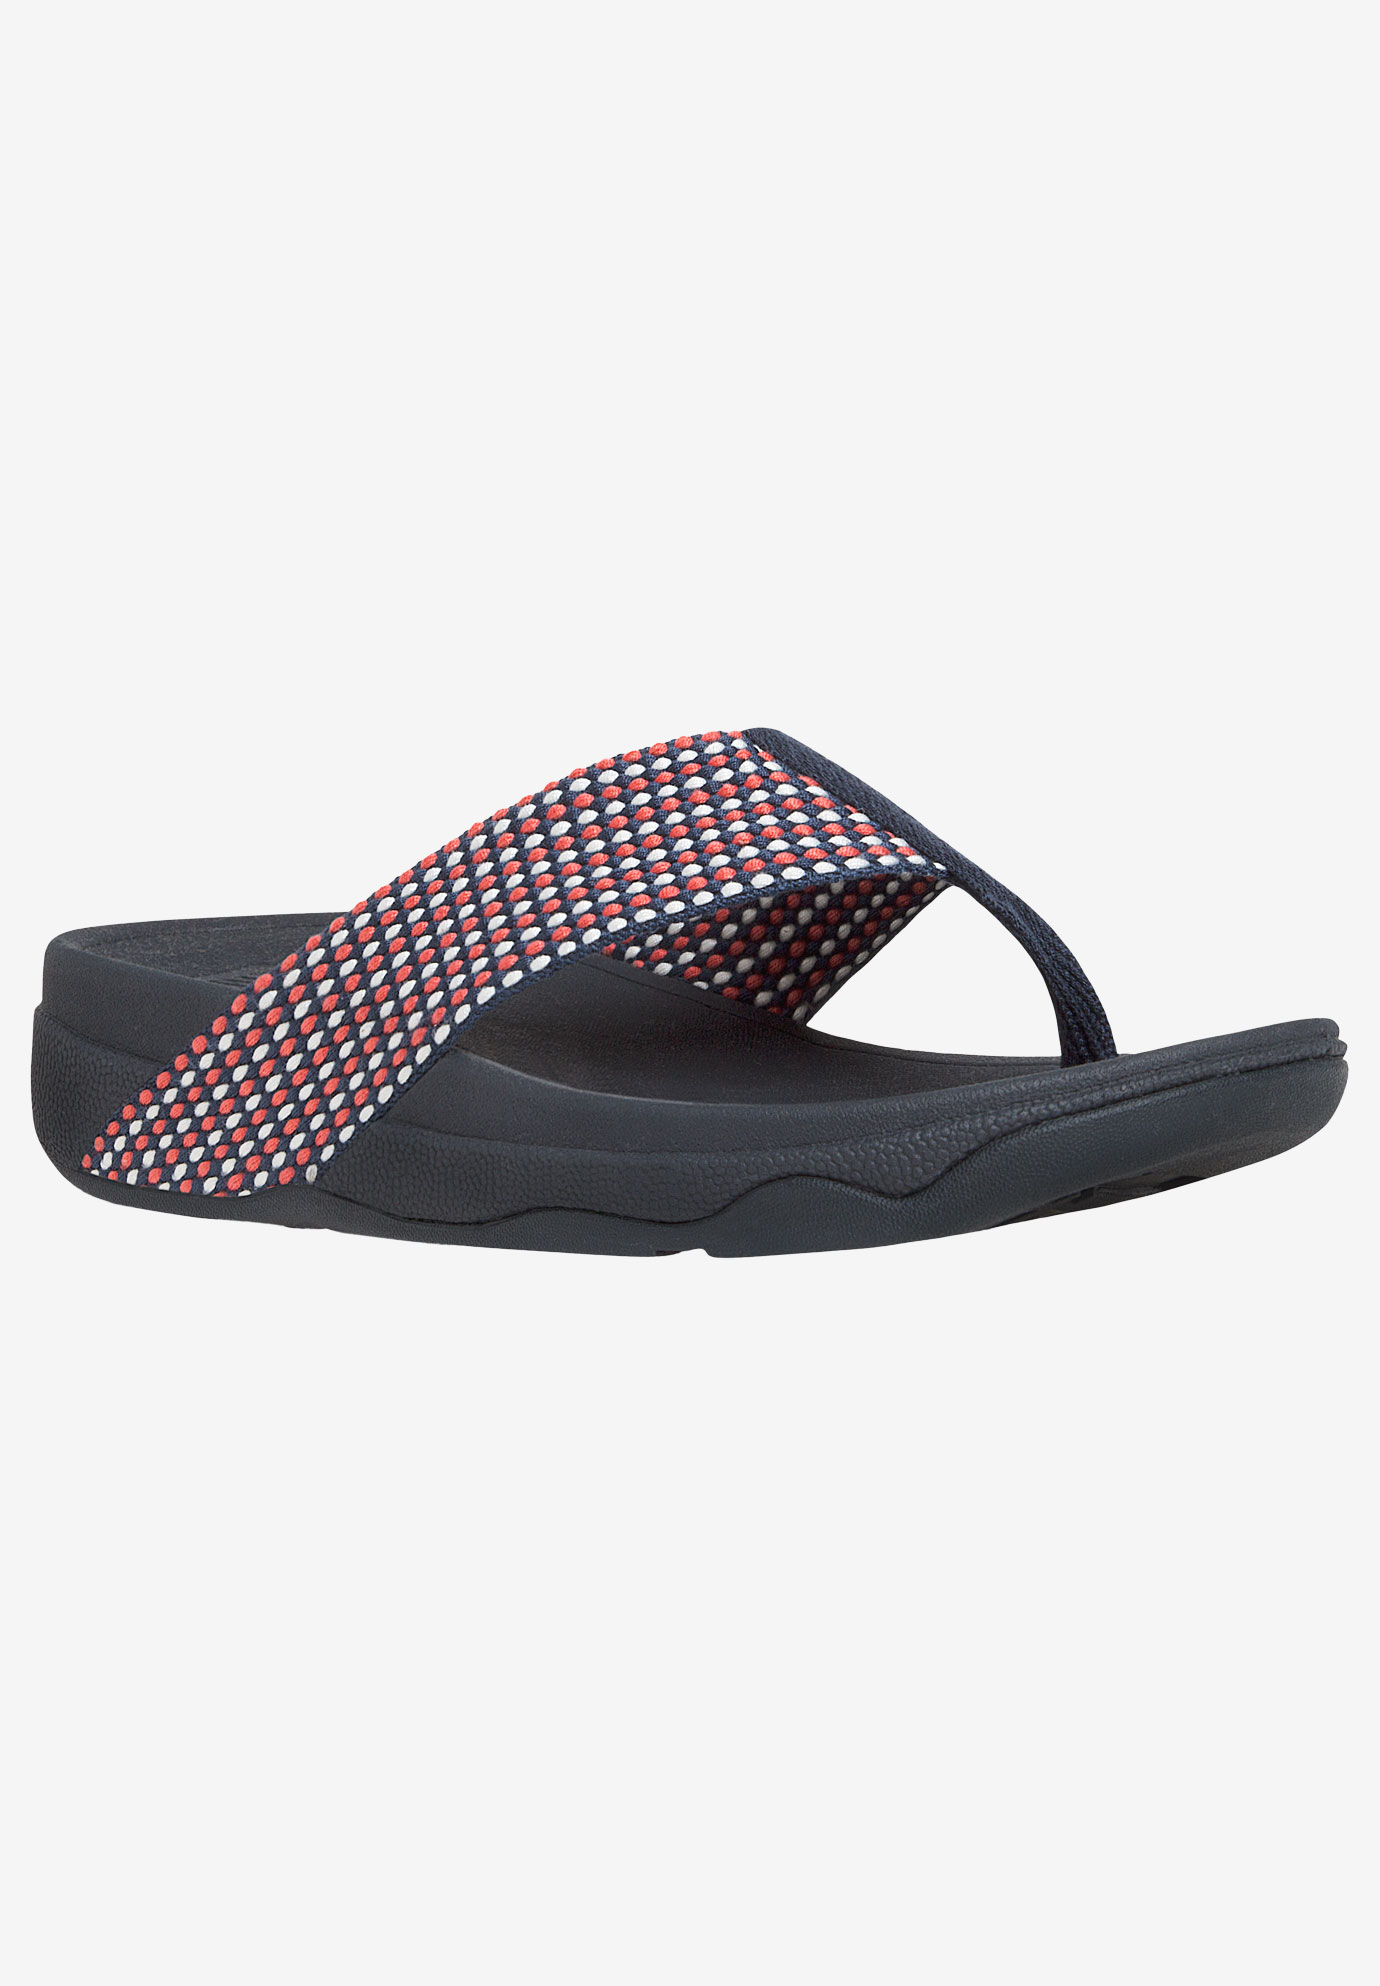 Surfa Sandal by FitFlop,